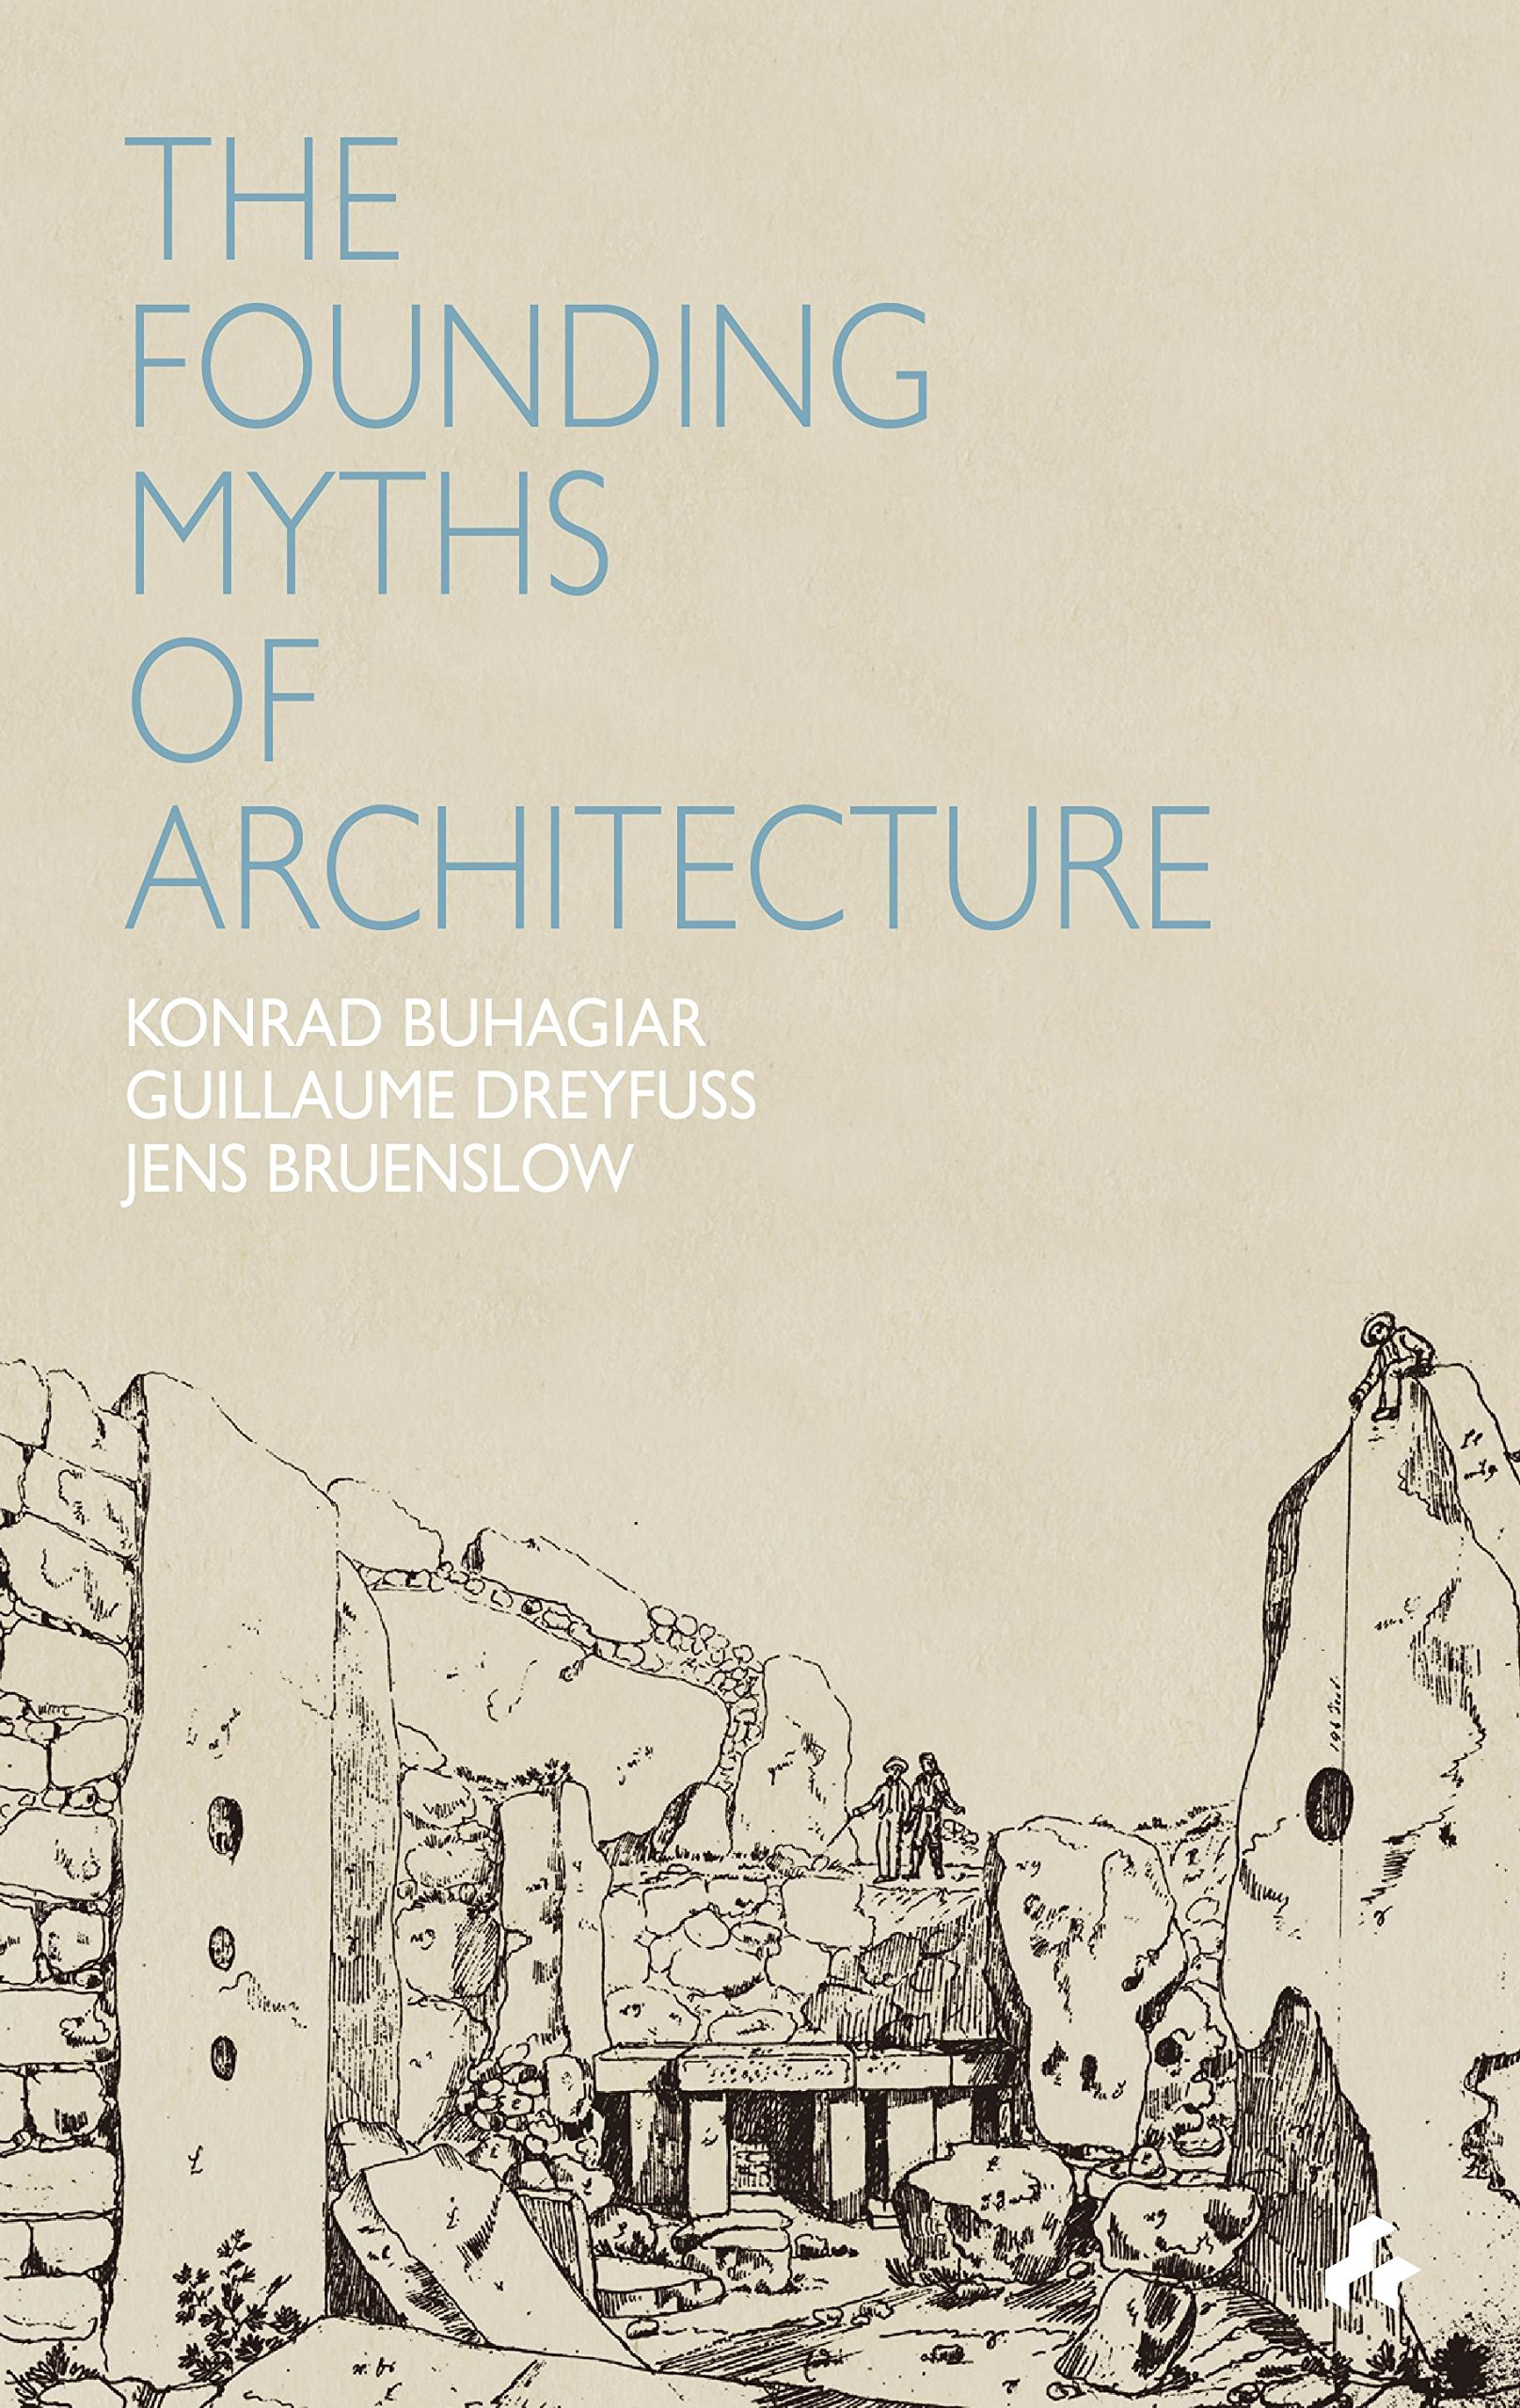 The   Founding Myths of Architecture